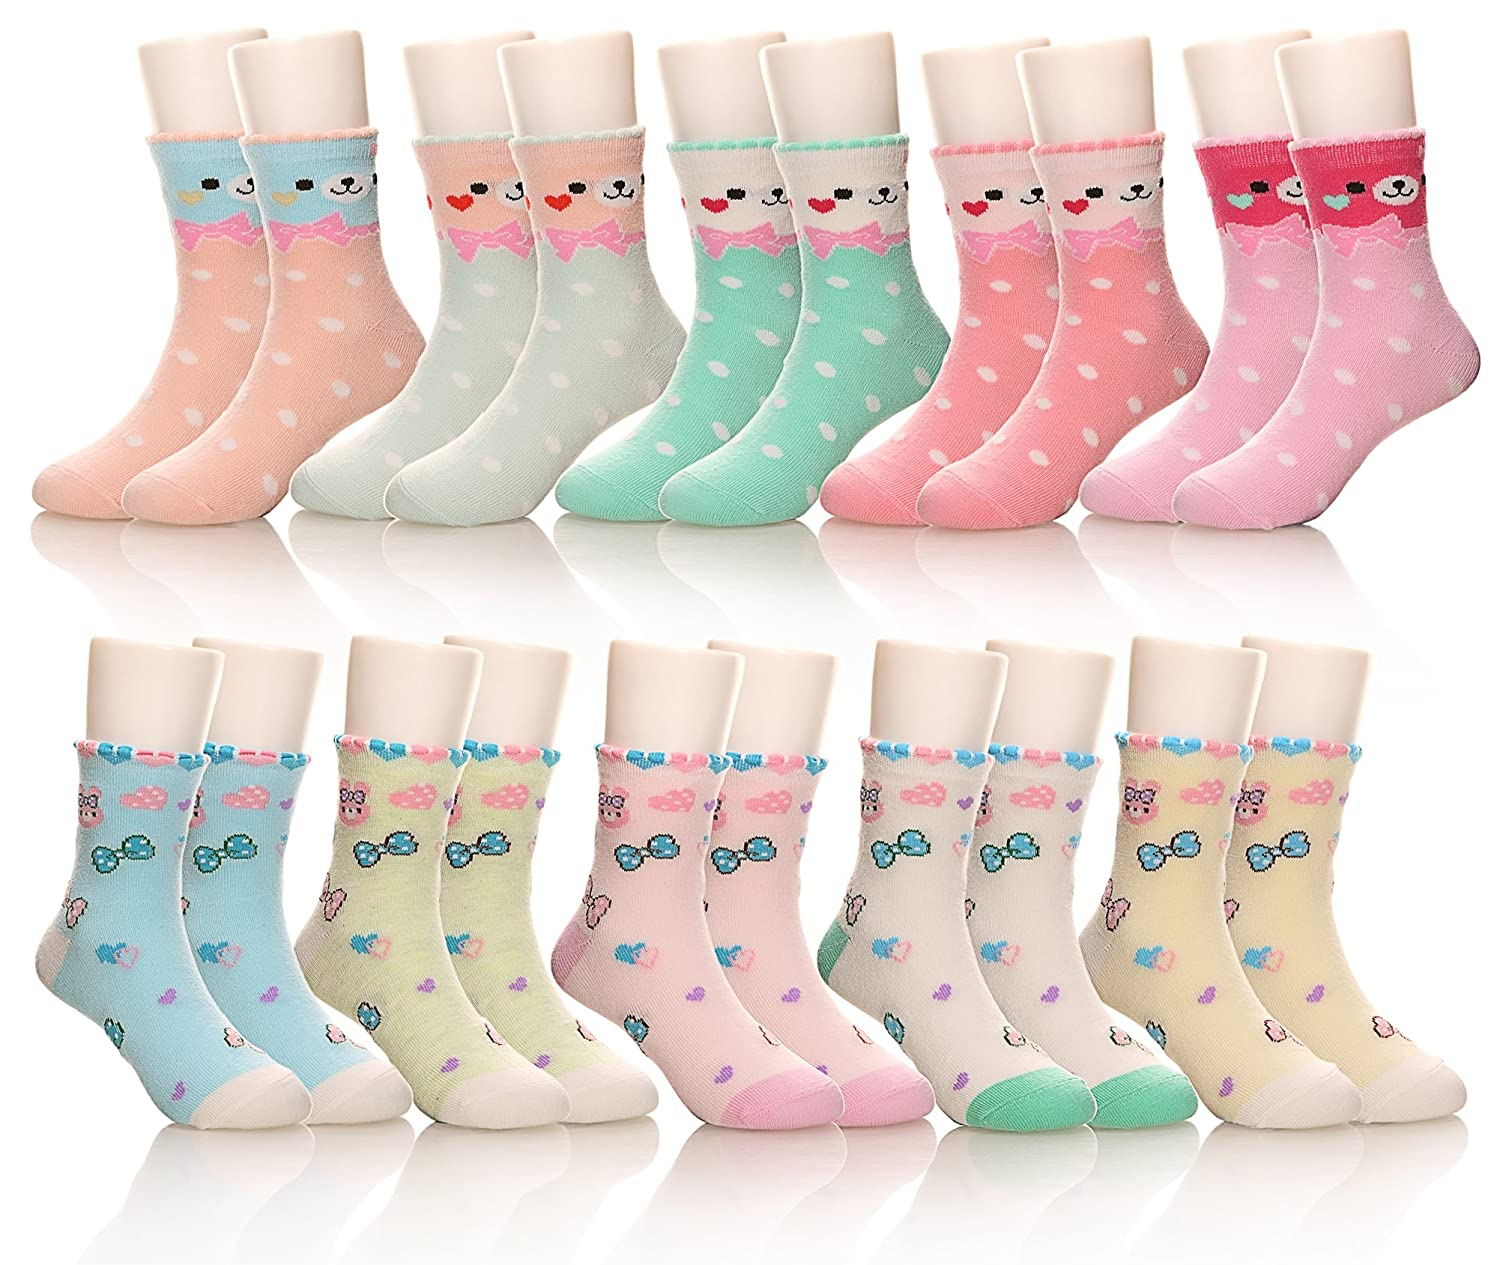 b0fc848c1 SUPER SOFT -Kids Girls Boy Cotton Socks Material:80% Cotton, 17% Polyester,  3% Spandex. Not too thick nor too thin fit all seasons, suitable for both  ...